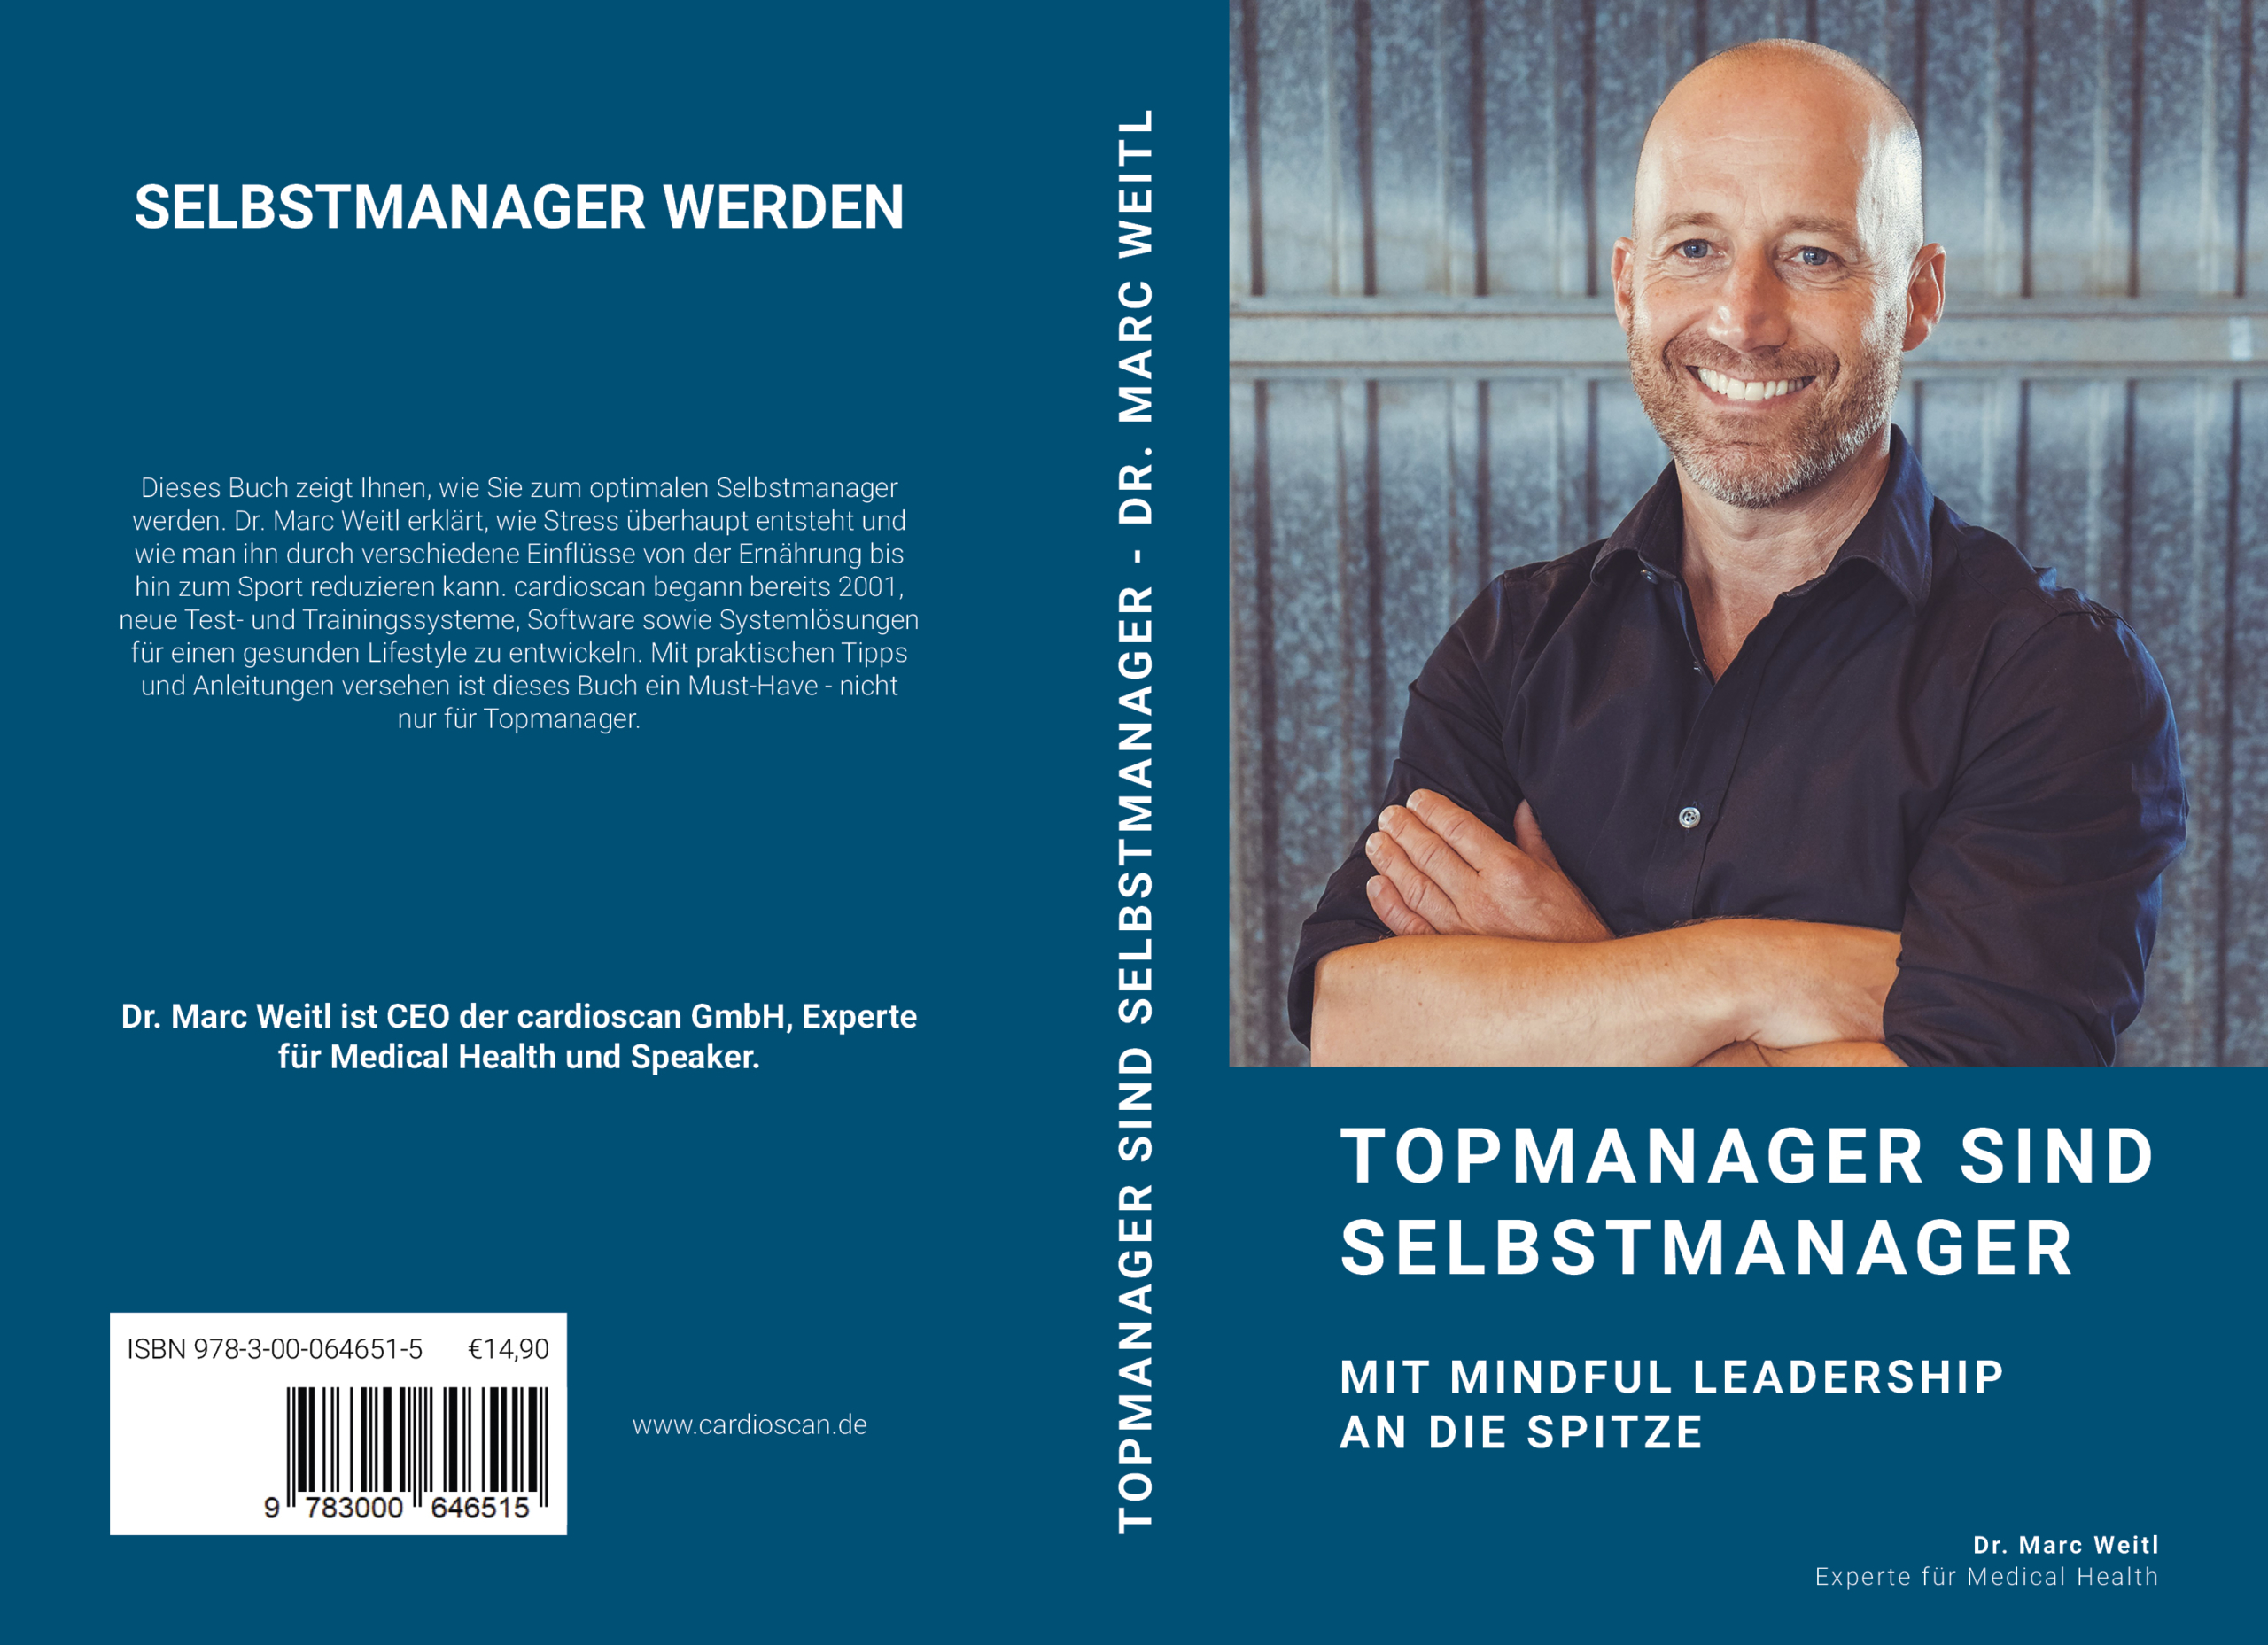 """Dr. Marc Weitl: """"Topmanager sind Selbstmanager - Mit Mindful Leadership an die Spitze"""""""